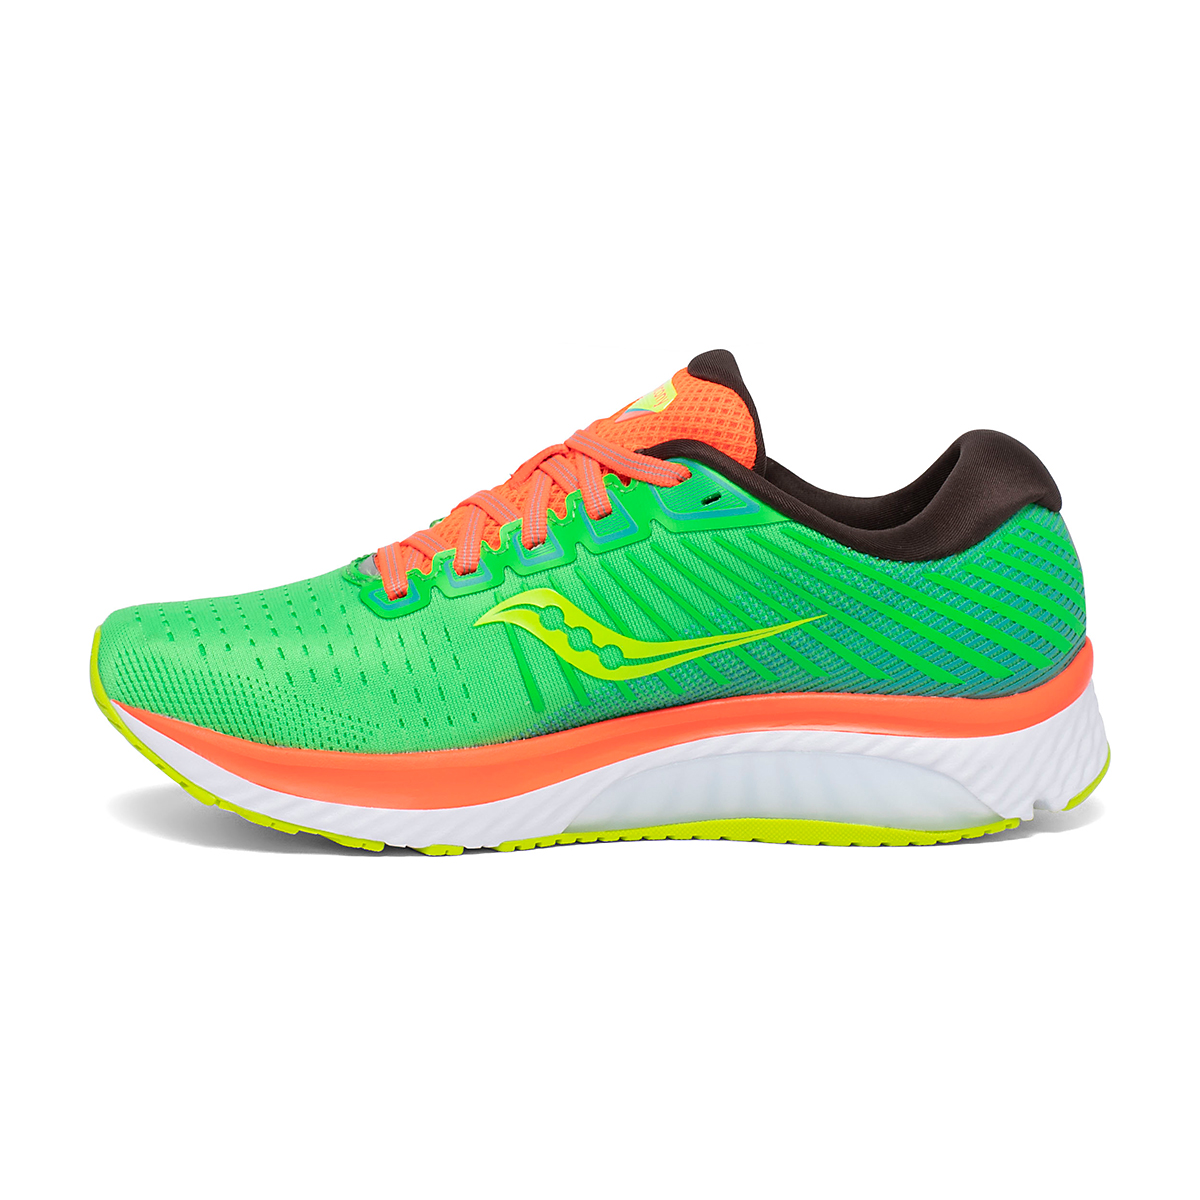 Women's Saucony Guide 13 Running Shoe - Color: Green Mutant - Size: 5 - Width: Regular, Green Mutant, large, image 2